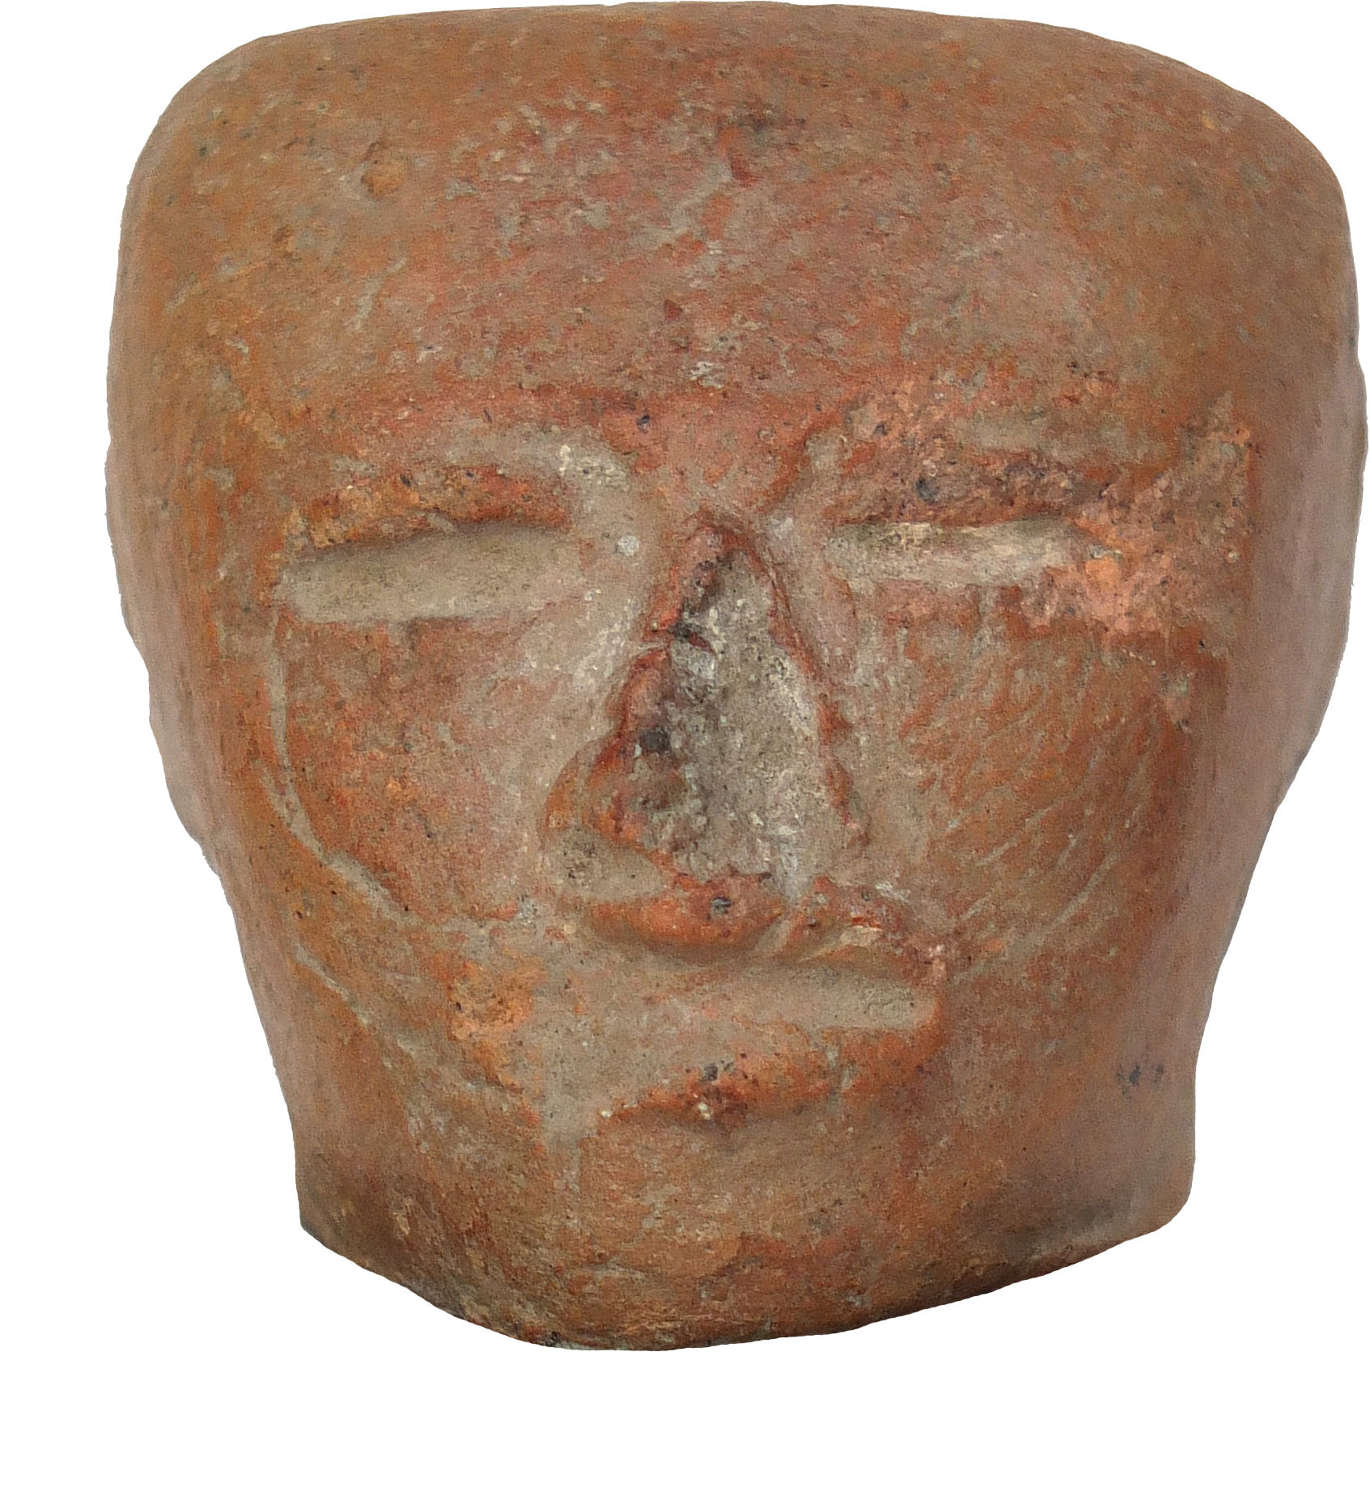 A Teotihuacan terracotta head, central Mexico